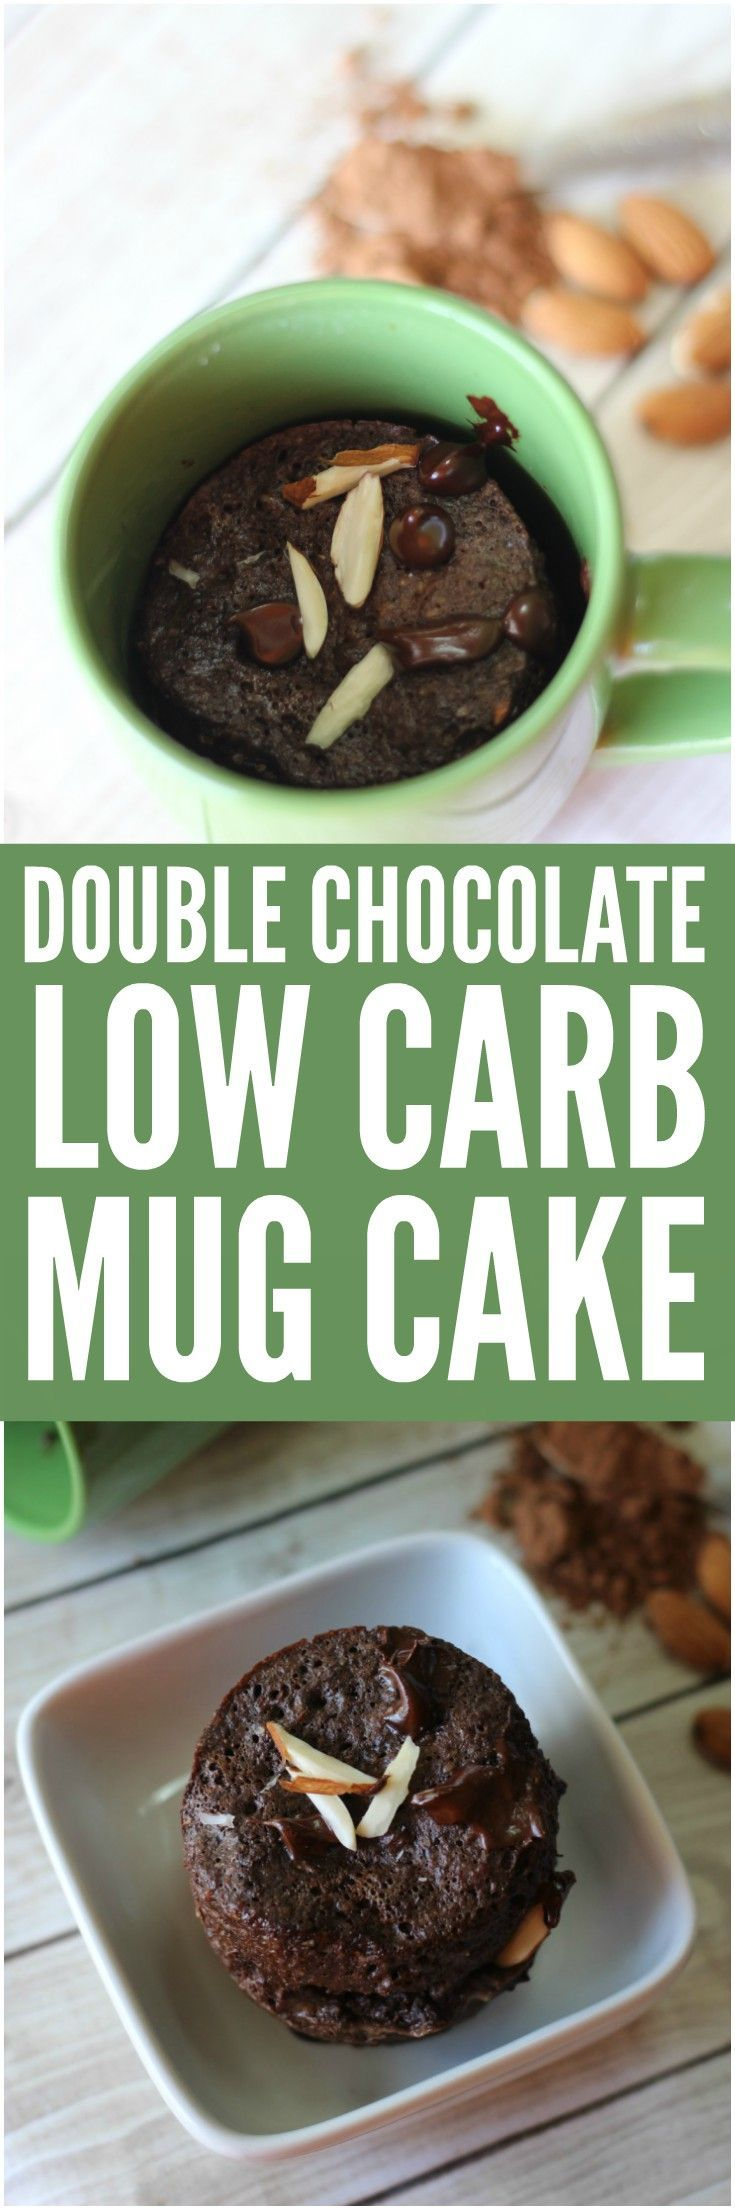 Satisfy your cravings for sweets without the carbs! This Double Chocolate Almond Low Carb Mug Cake is the perfect dessert for those watching their carb intake.